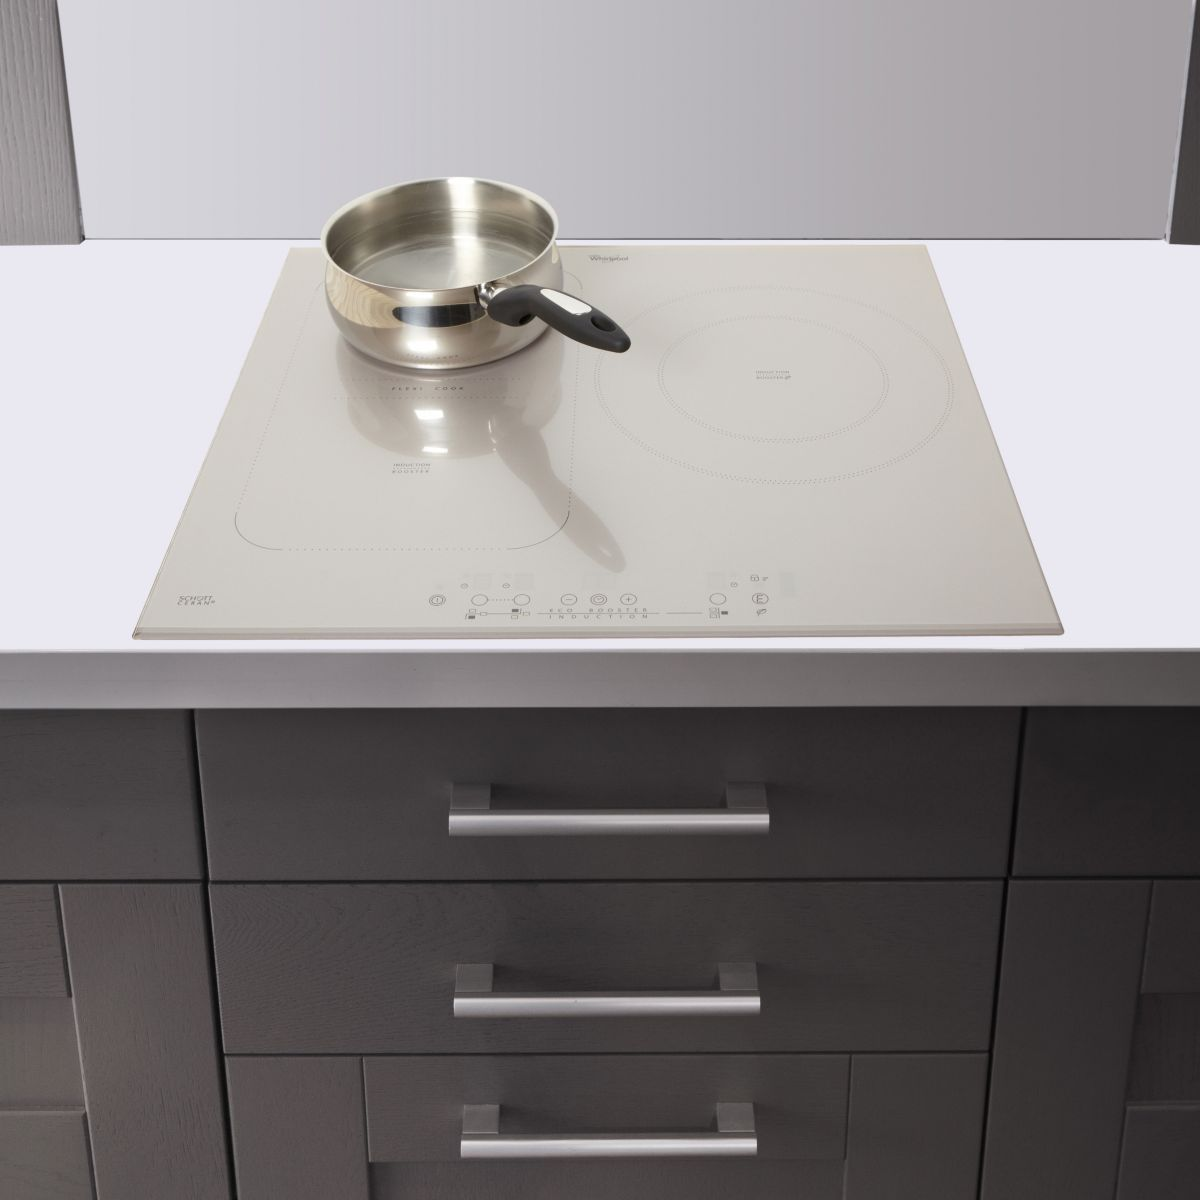 Whirlpool acm 911 bf table de cuisson induction flexi for Table de cuisson induction whirlpool